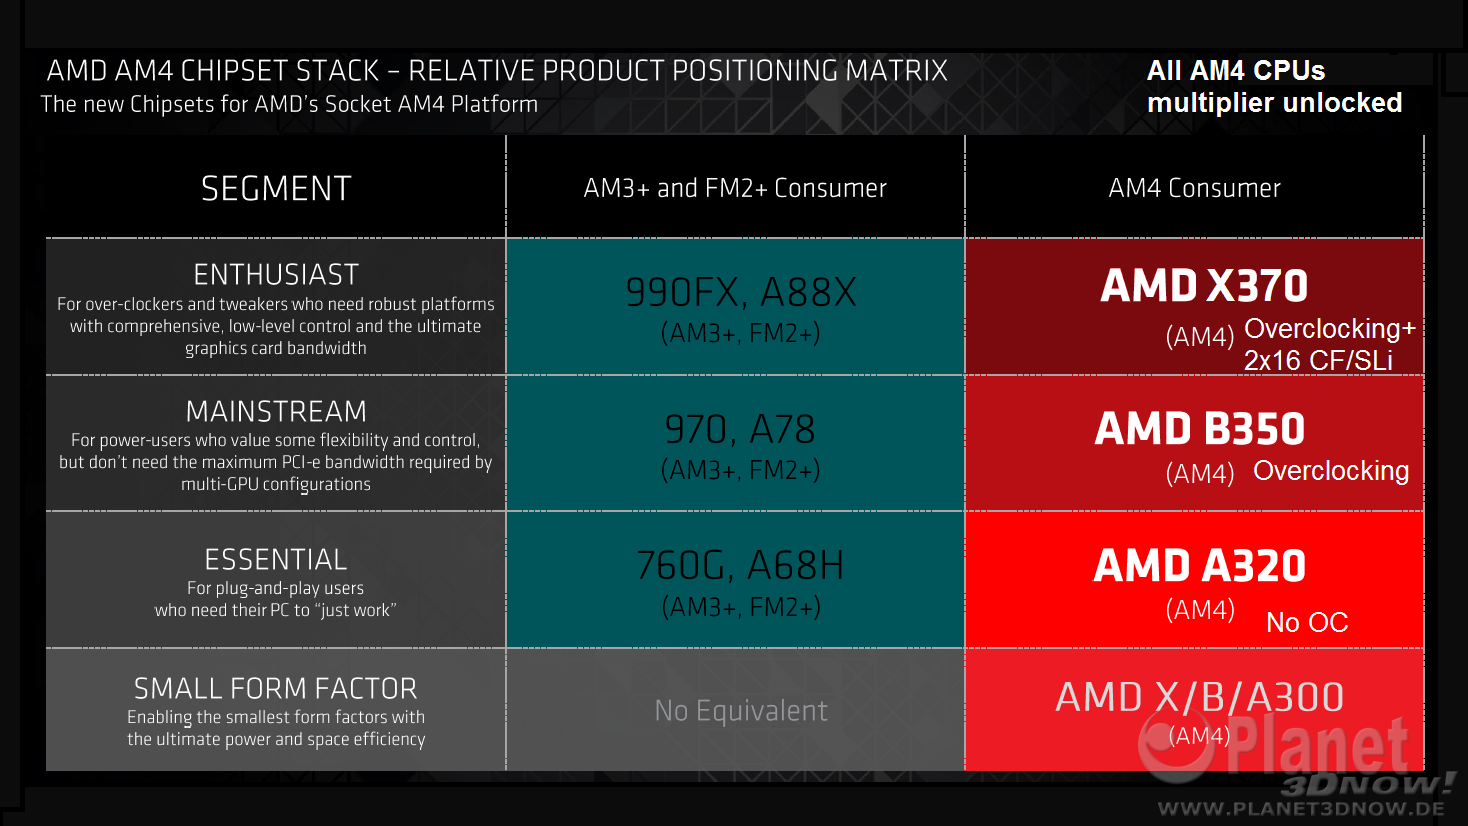 AMD X370 Chipset For High-End AM4 Motherboards Detailed